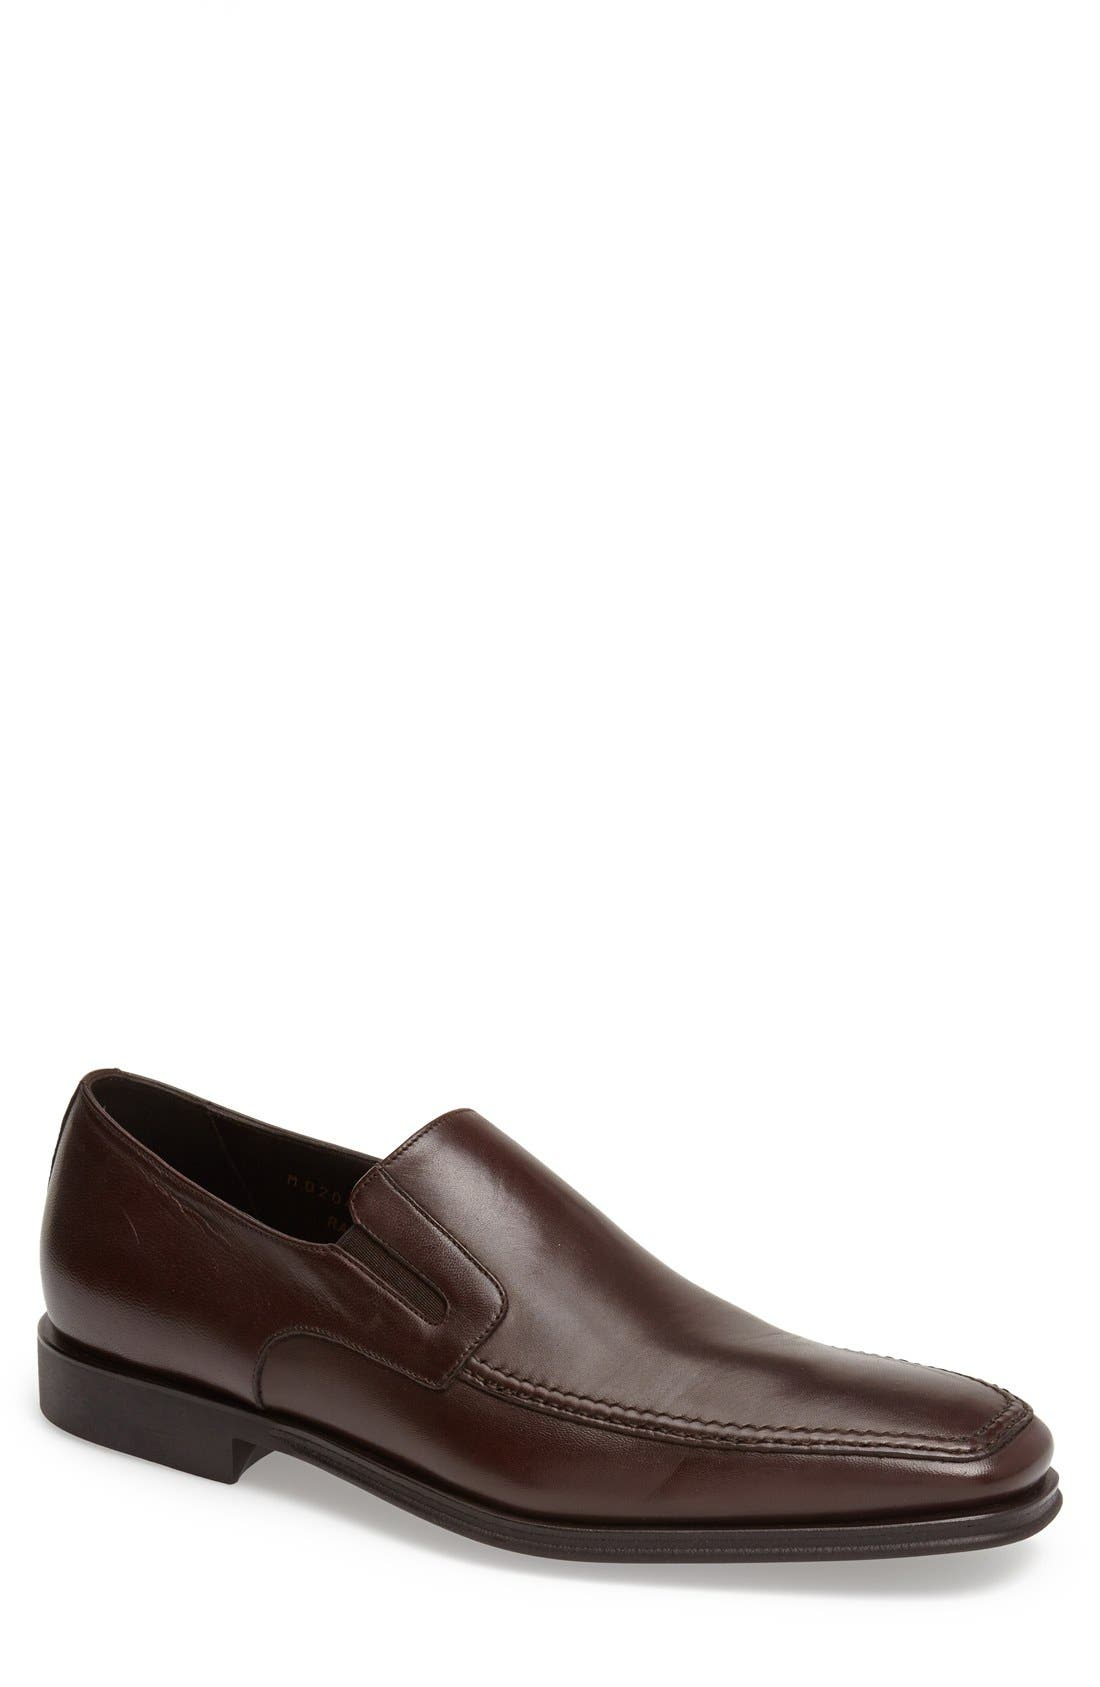 Main Image - Bruno Magli 'Raging' Loafer (Men)